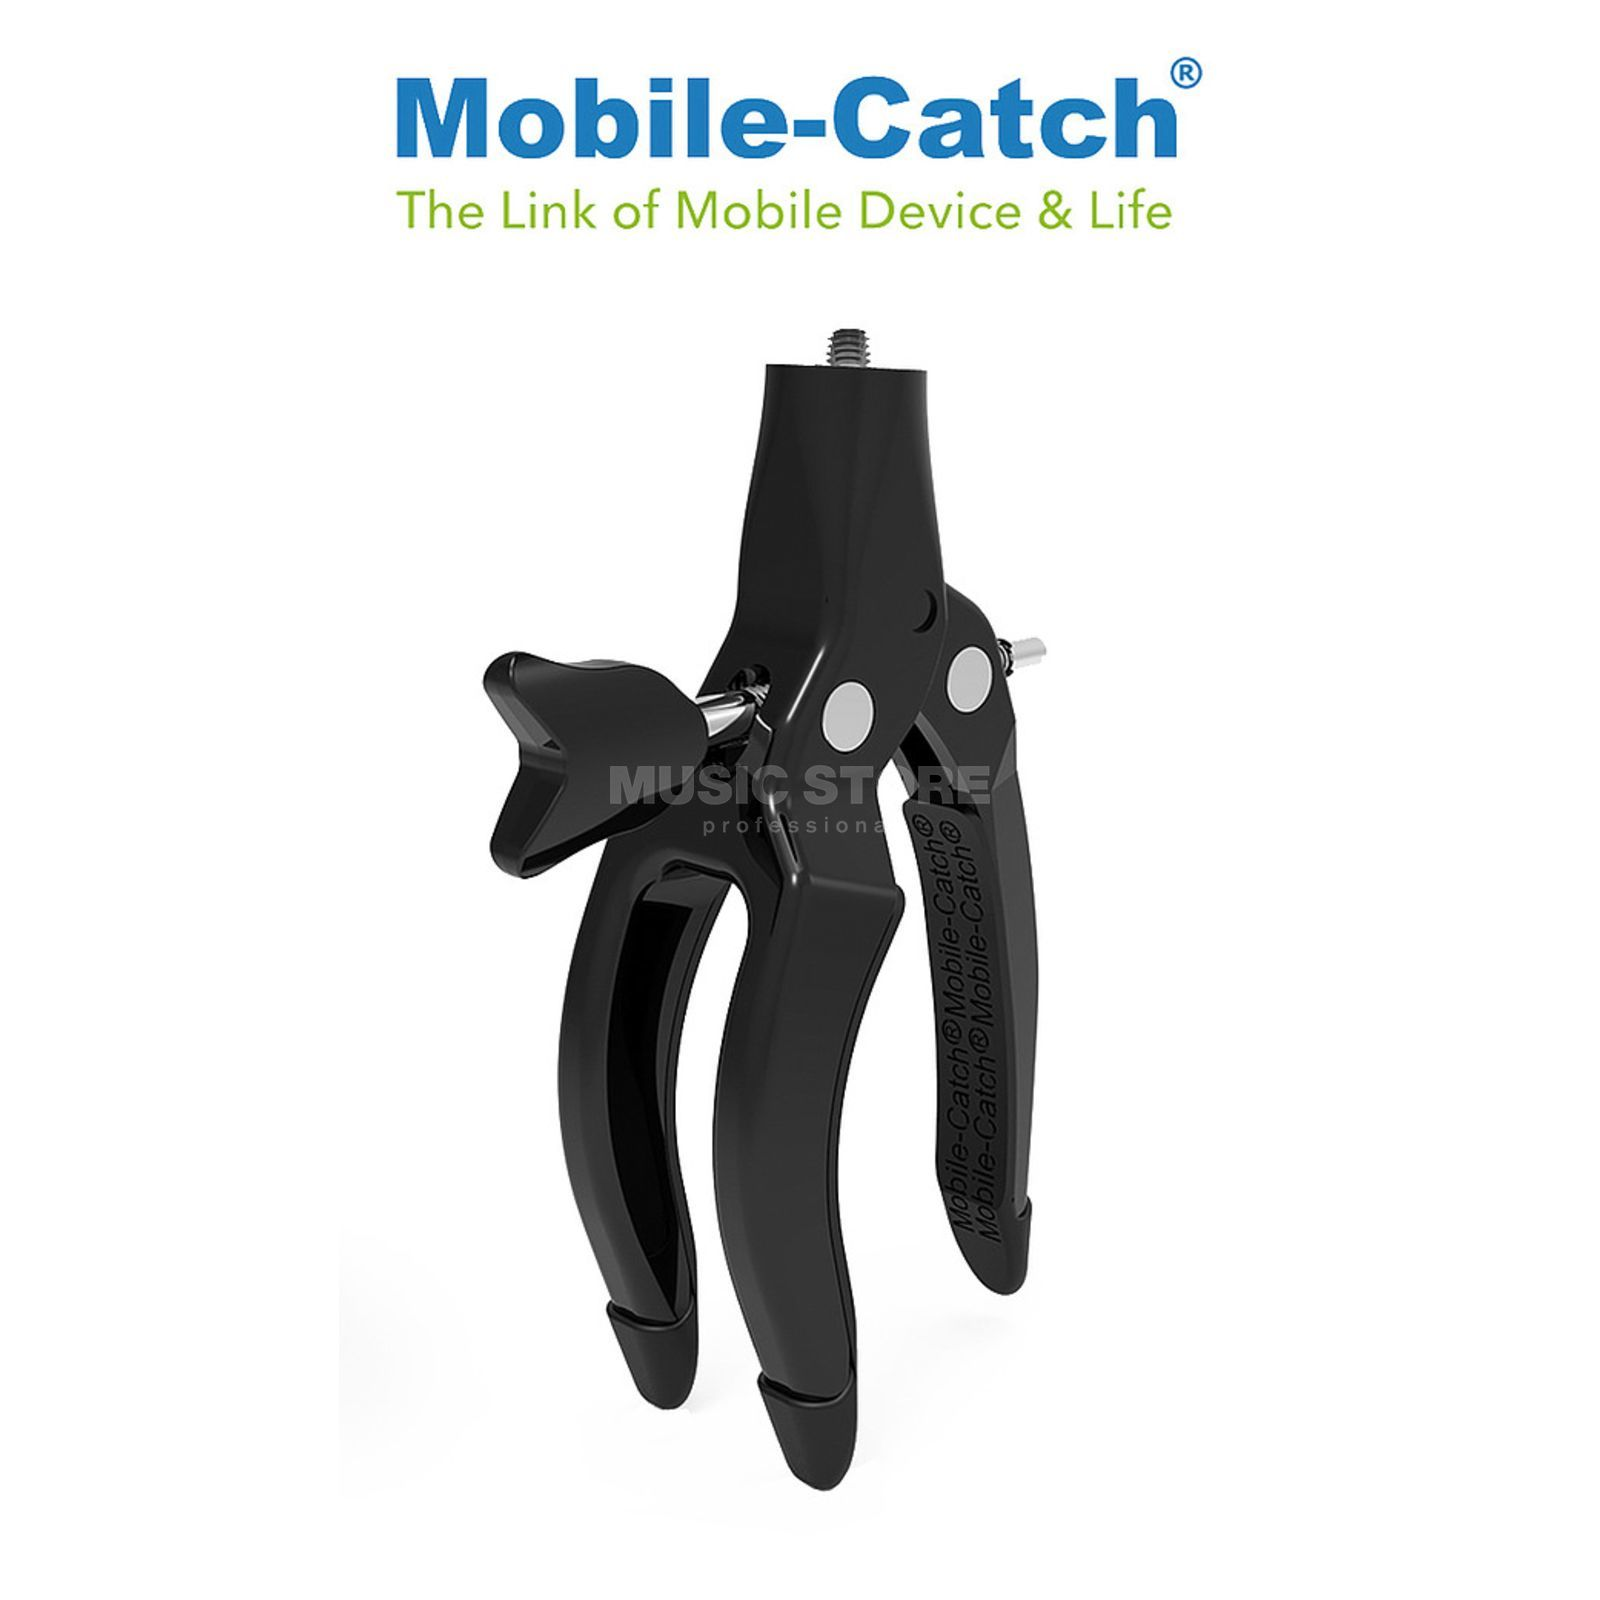 Mobile-Catch Black Edition Zdjęcie produktu